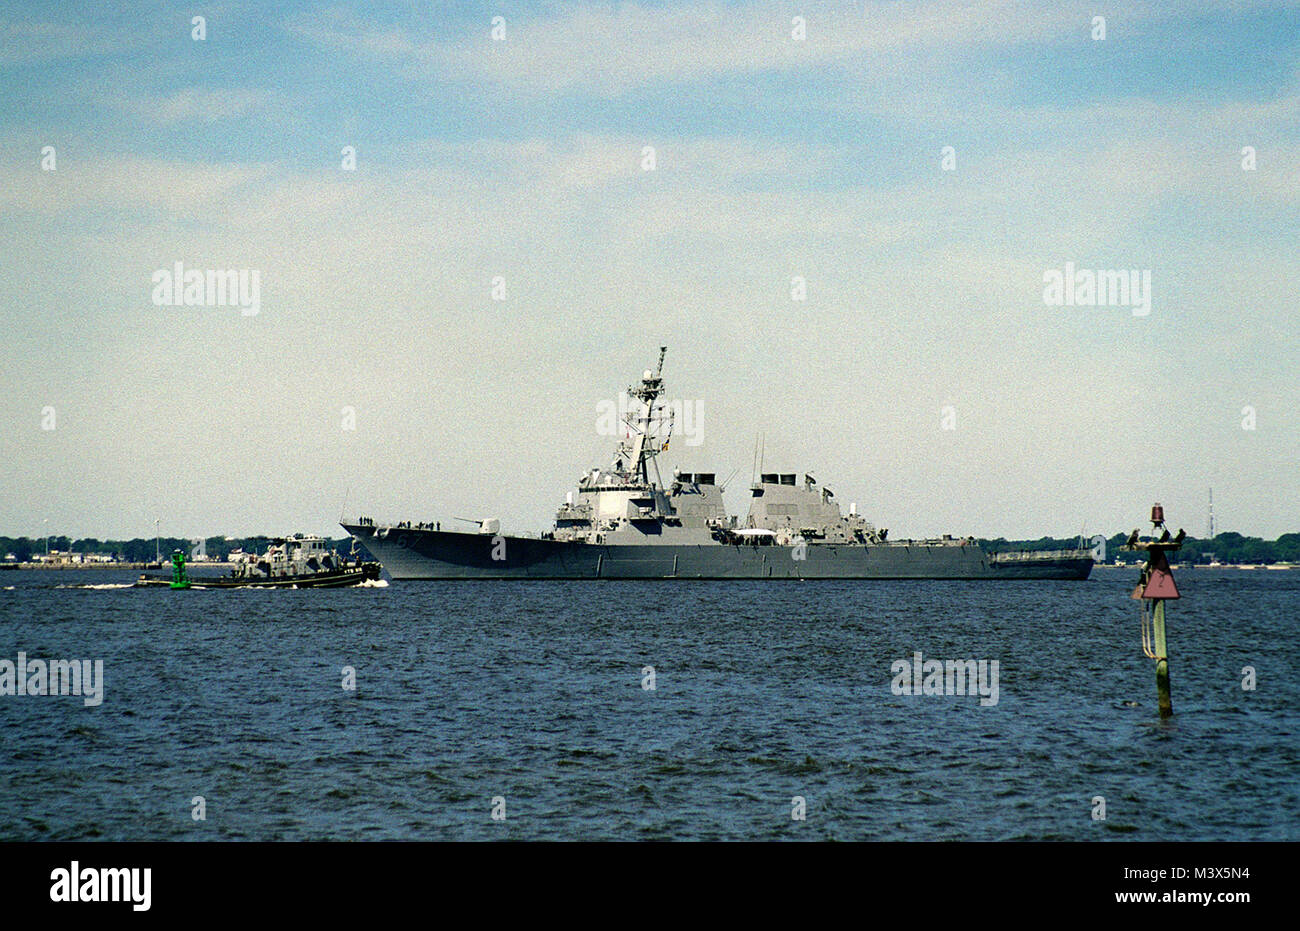 The Guided Missile Destroyer USS COLE (DDG 67) arrives in her home port after returning from sea following the passage - Stock Image